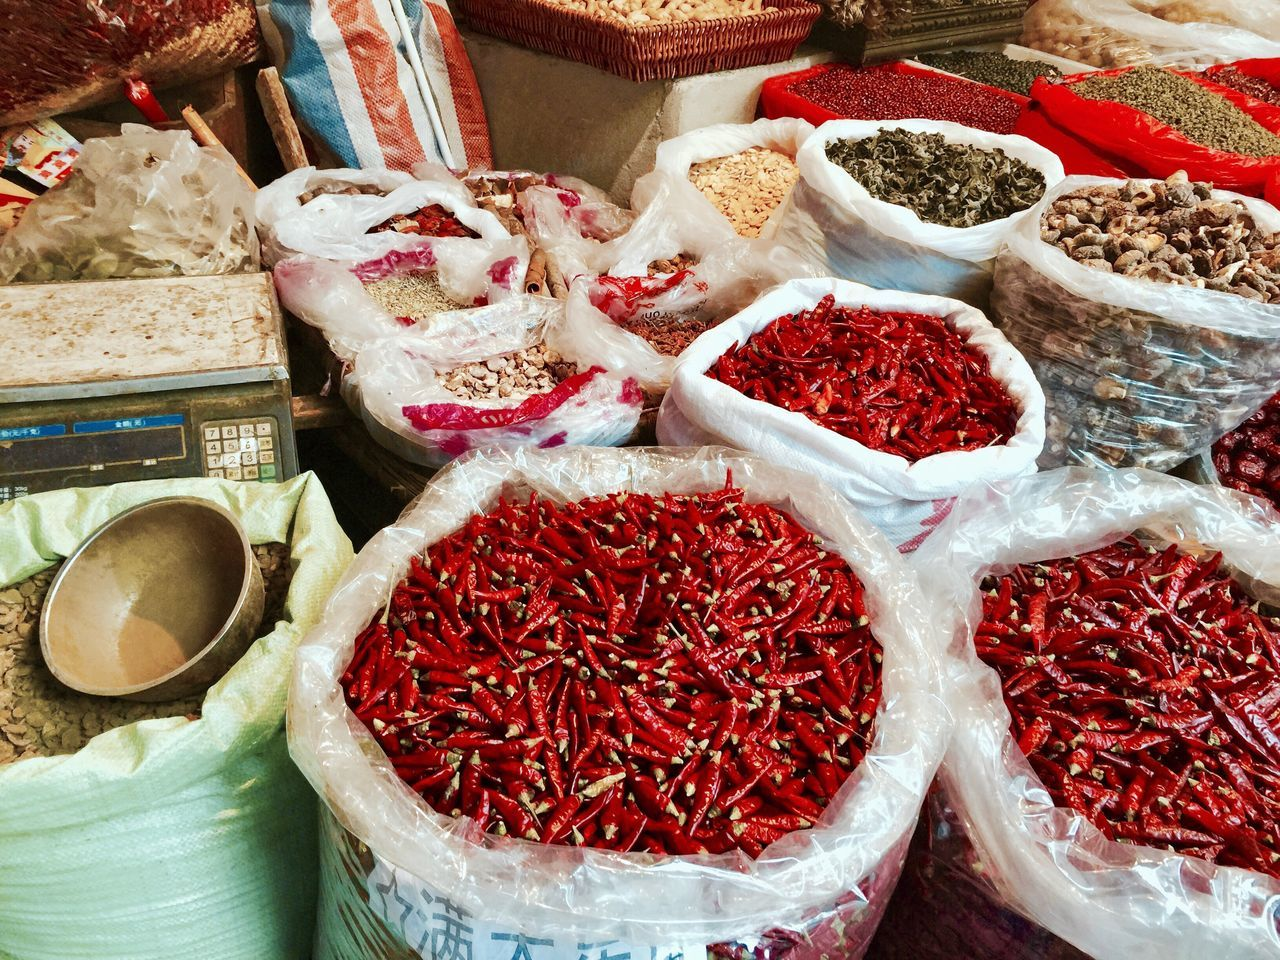 Food Variation High Angle View For Sale Large Group Of Objects No People Market Stall Freshness Red Chili Pepper Dried Fruit Market Outdoors Close-up Day Chilies Asian  Market Marketplace Spices Chinese Food China Photos EyeEmNewHere